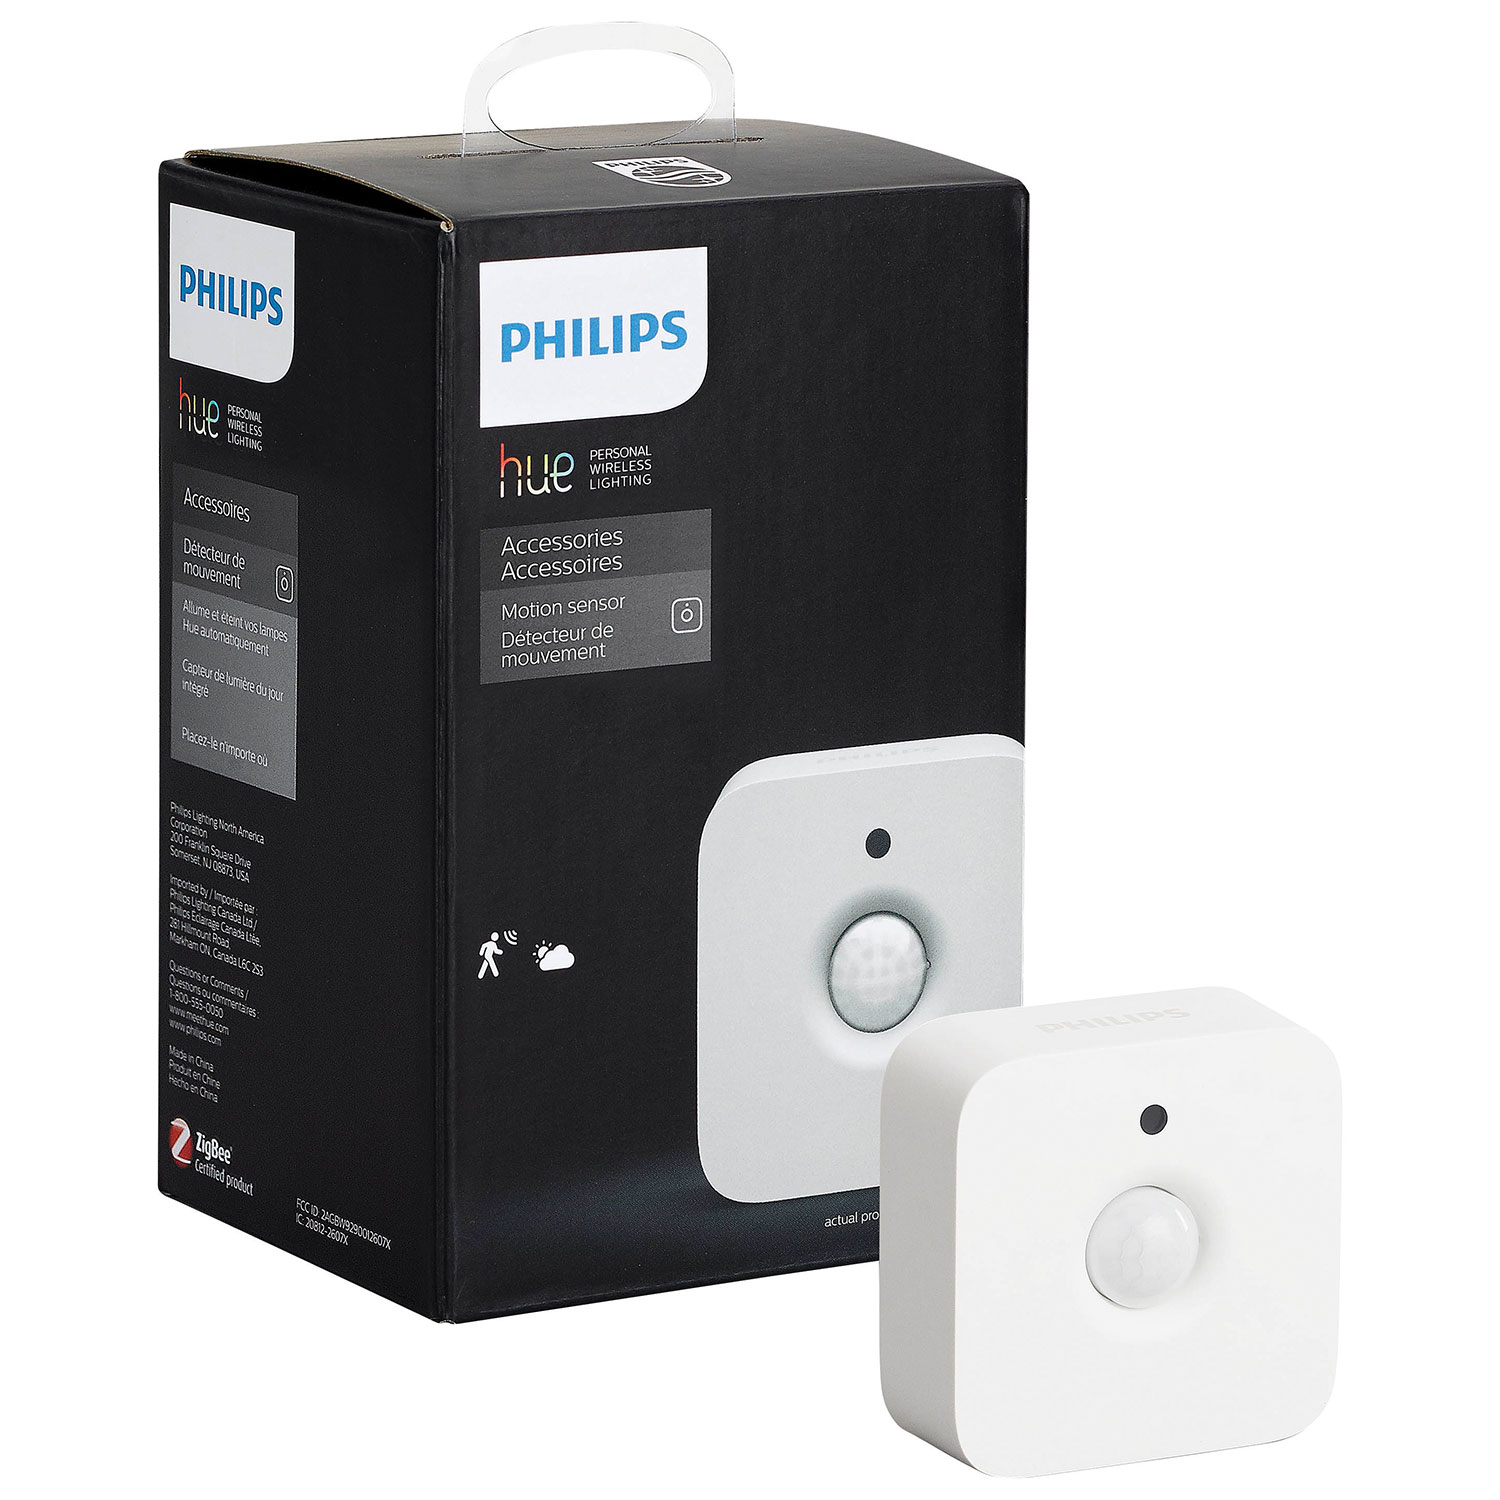 Philips Hue Motion Sensor APR Image